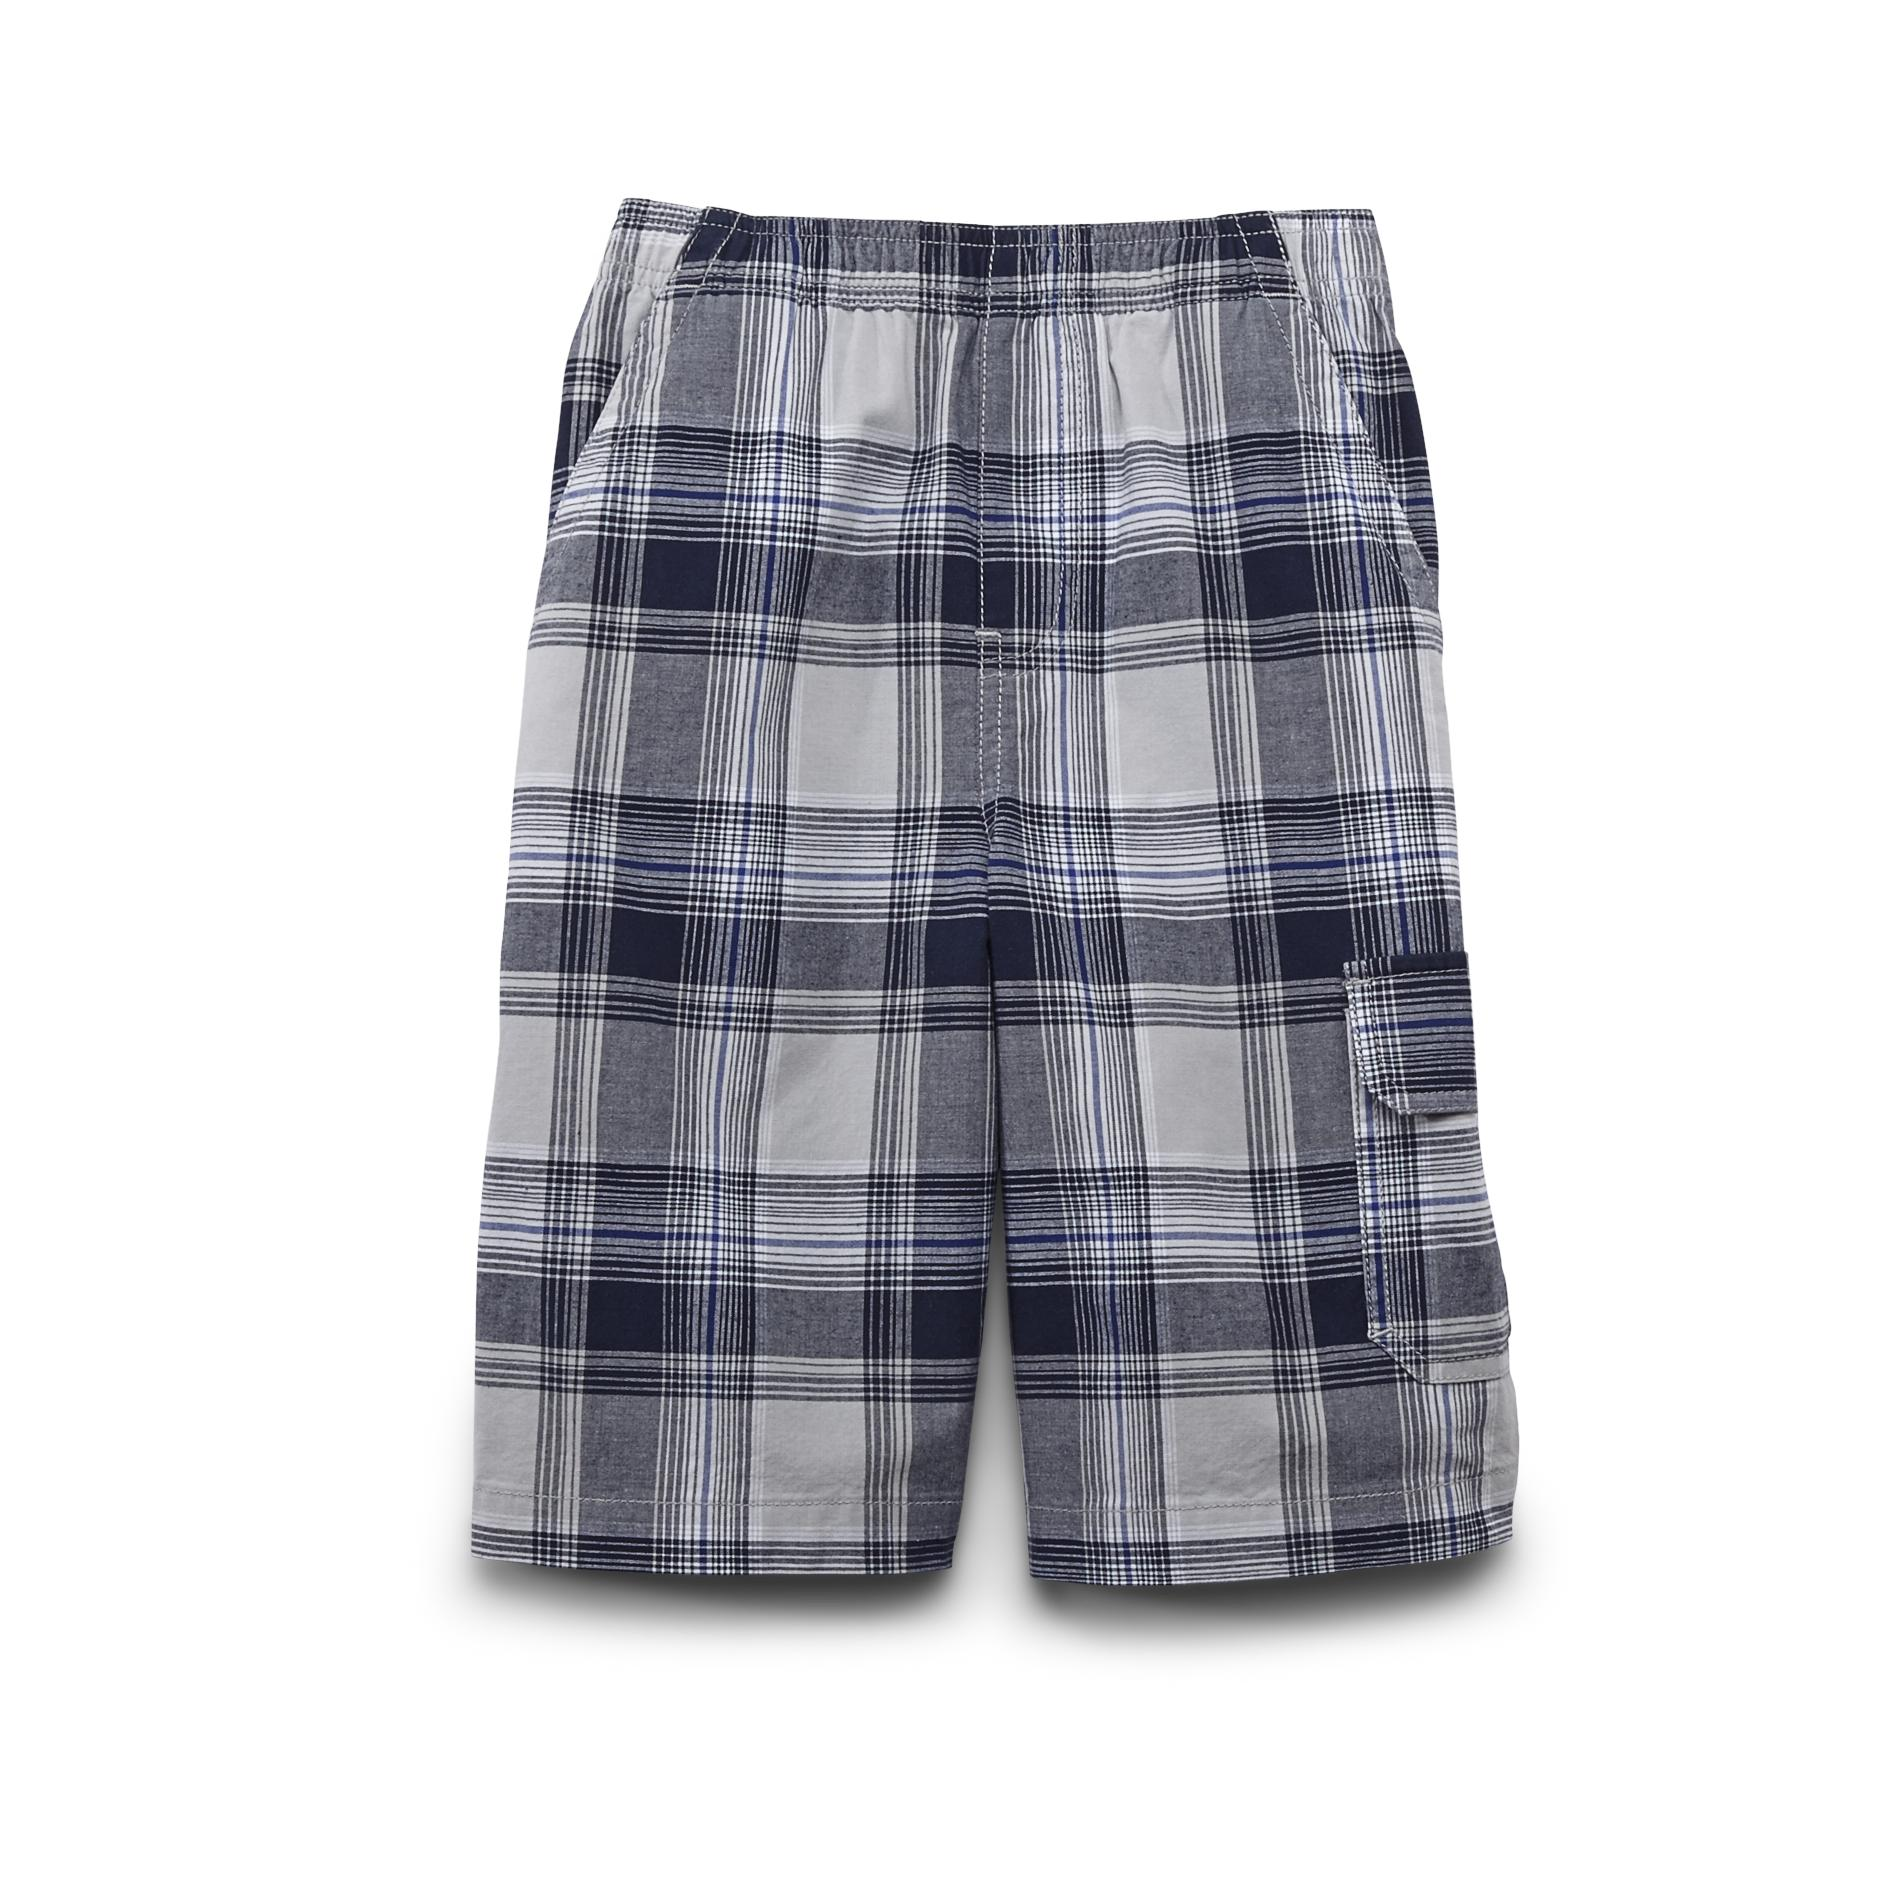 Basic Editions Boy's Woven Shorts - Plaid at Kmart.com